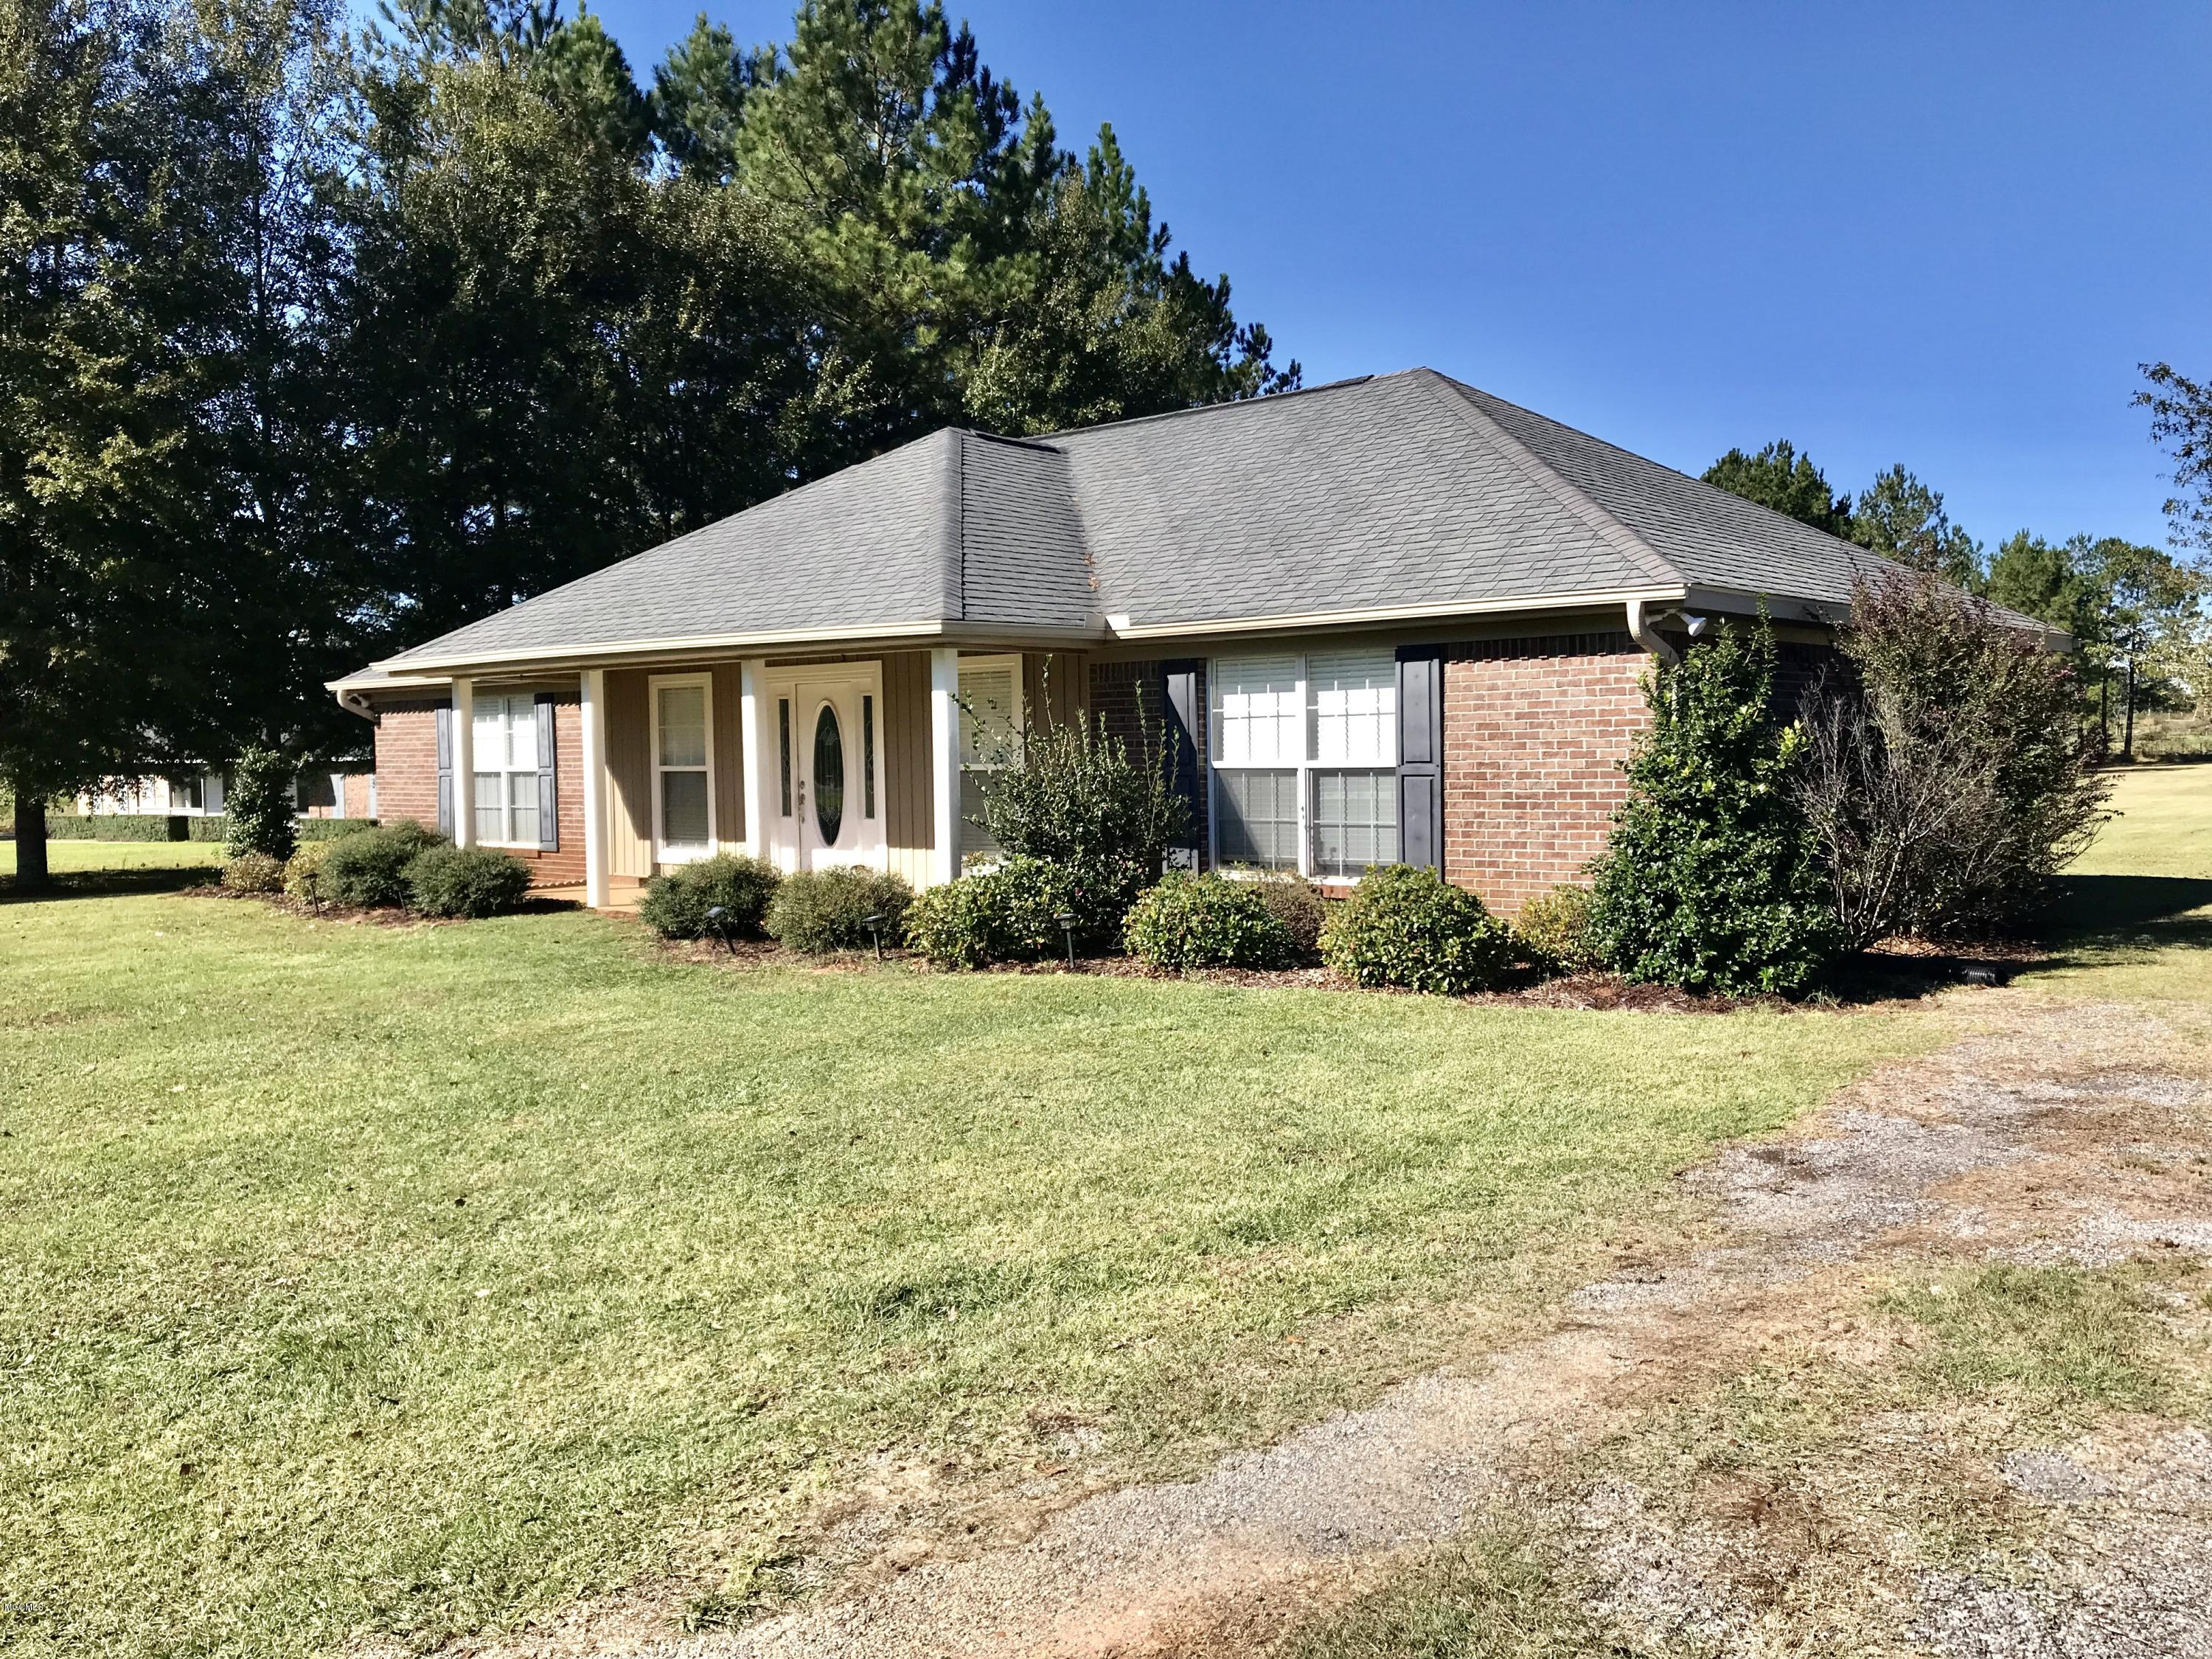 1164 Lloyd Eubanks Rd, Lucedale, Mississippi 39452, 3 Bedrooms Bedrooms, ,2 BathroomsBathrooms,Single-family,For Sale,Lloyd Eubanks,341164